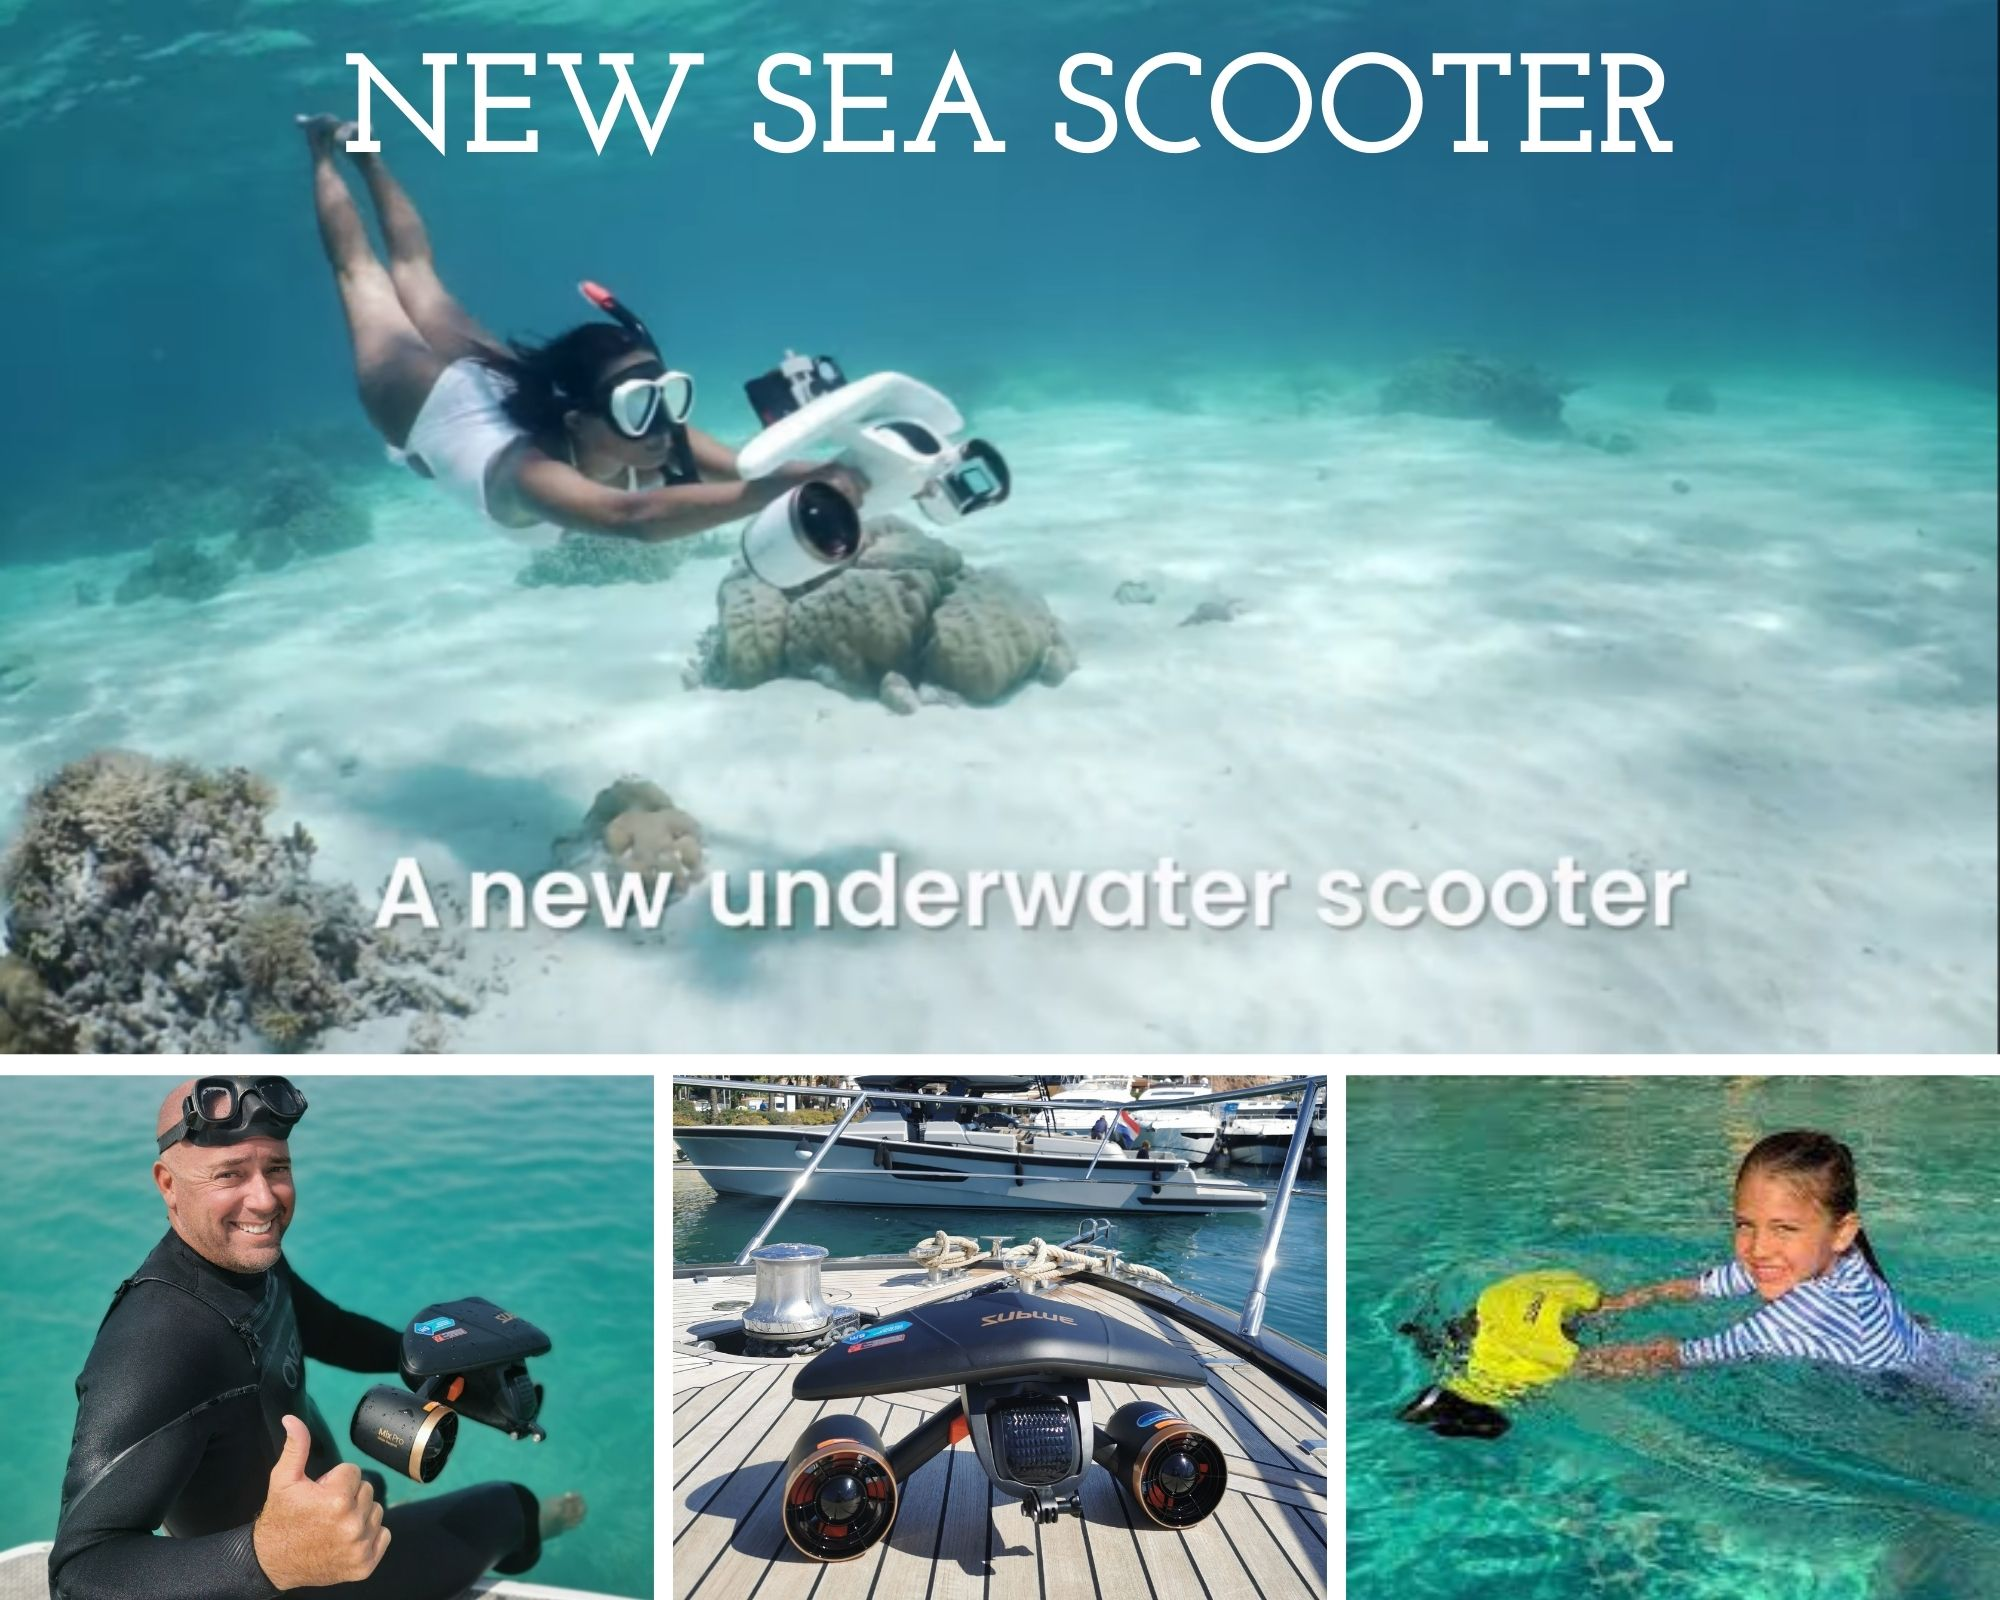 Water Toys for Boats: New Sea Scooter